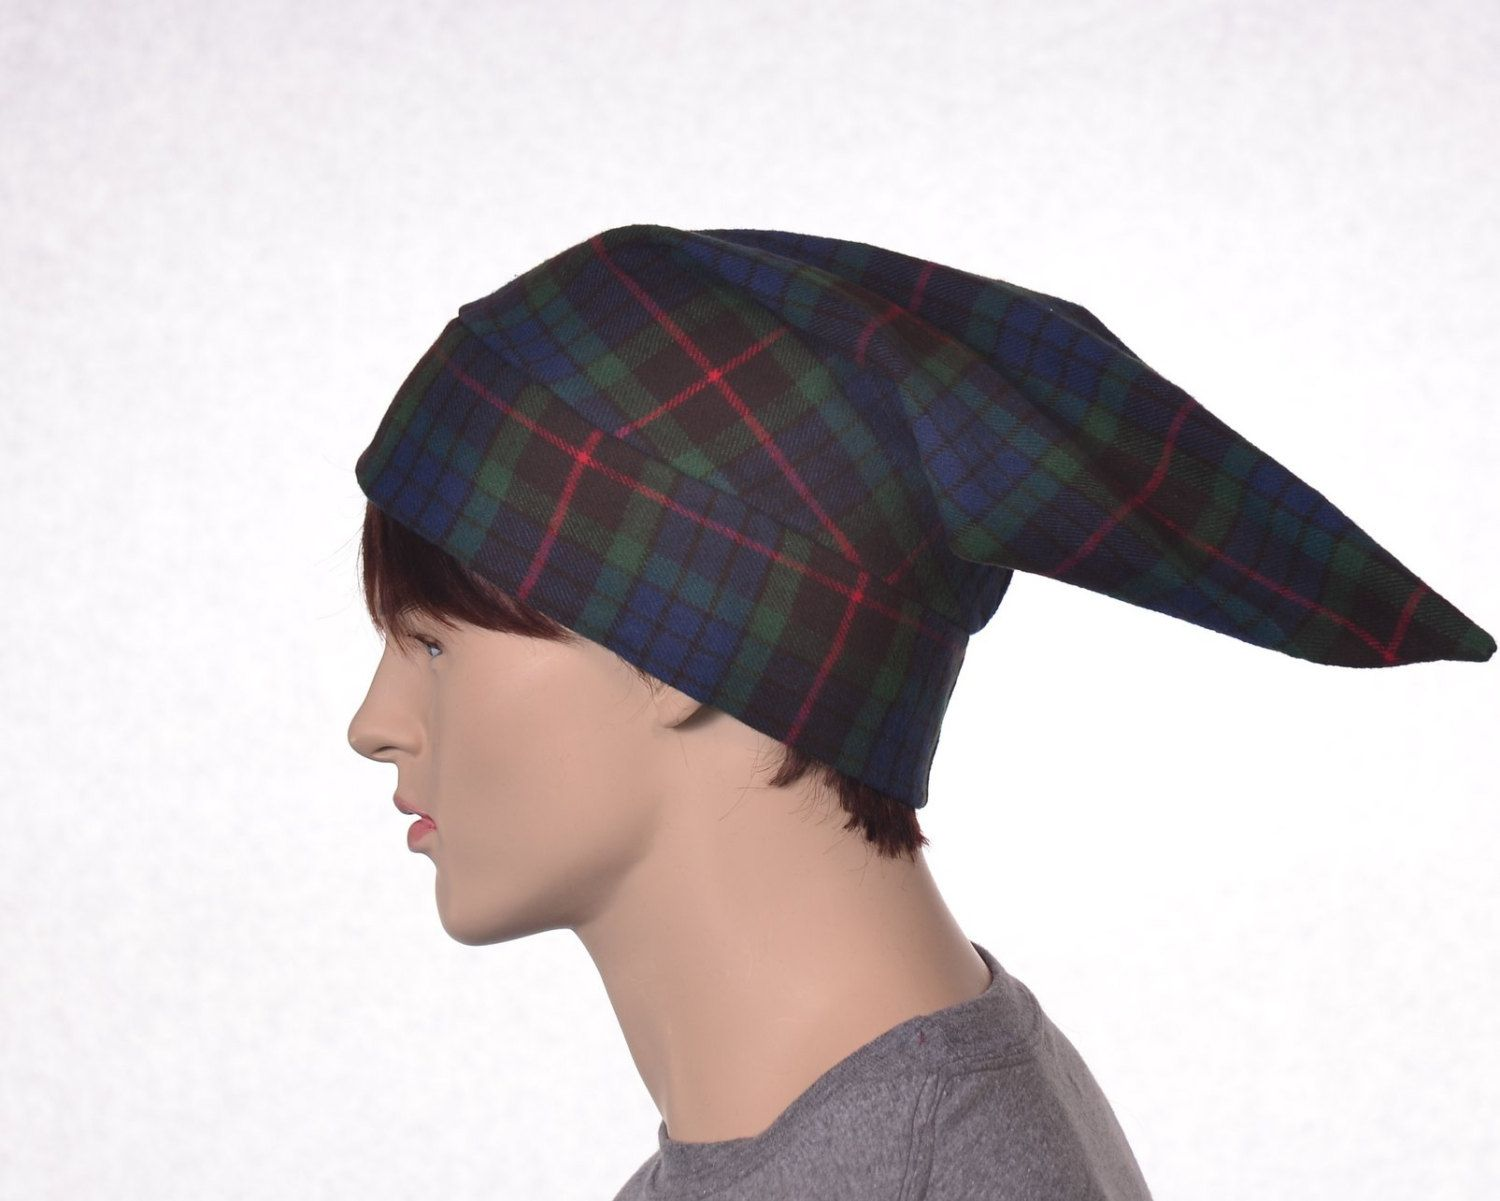 f3663fc2 Cotton Flannel Night Cap in Green Tartan Plaid Heavyweight Nightcap ...